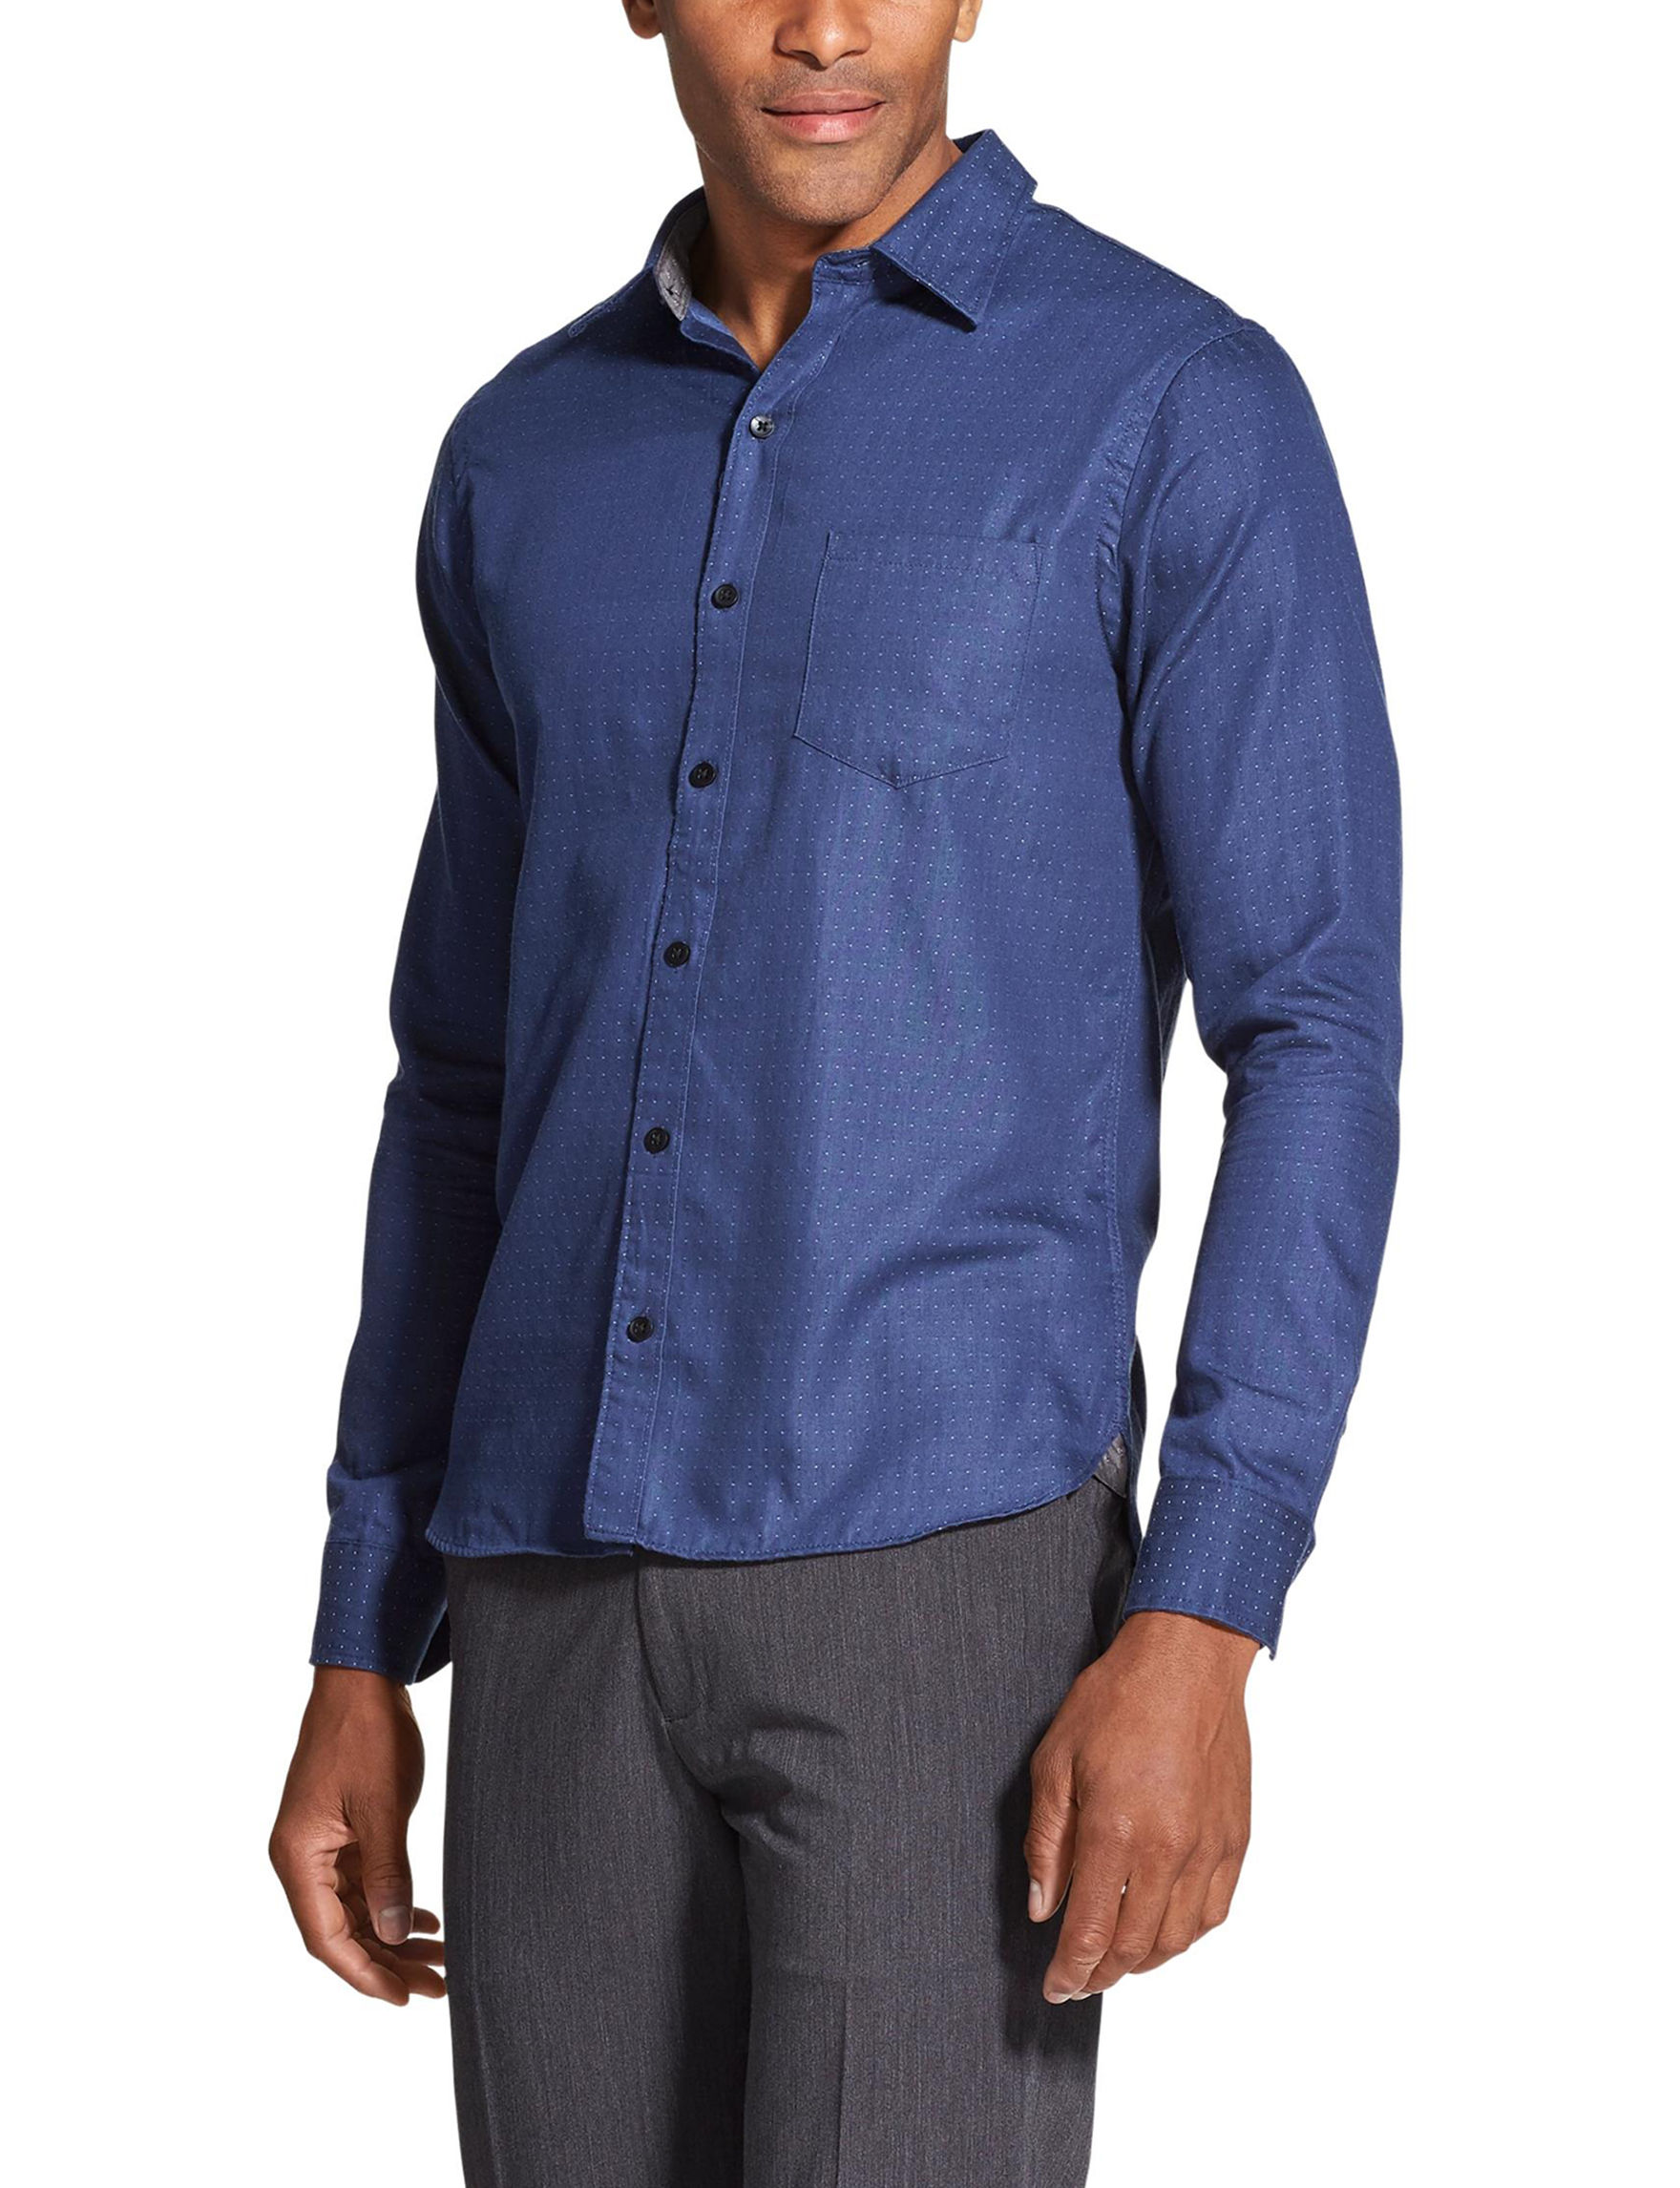 Van Heusen Blue / Dots Casual Button Down Shirts